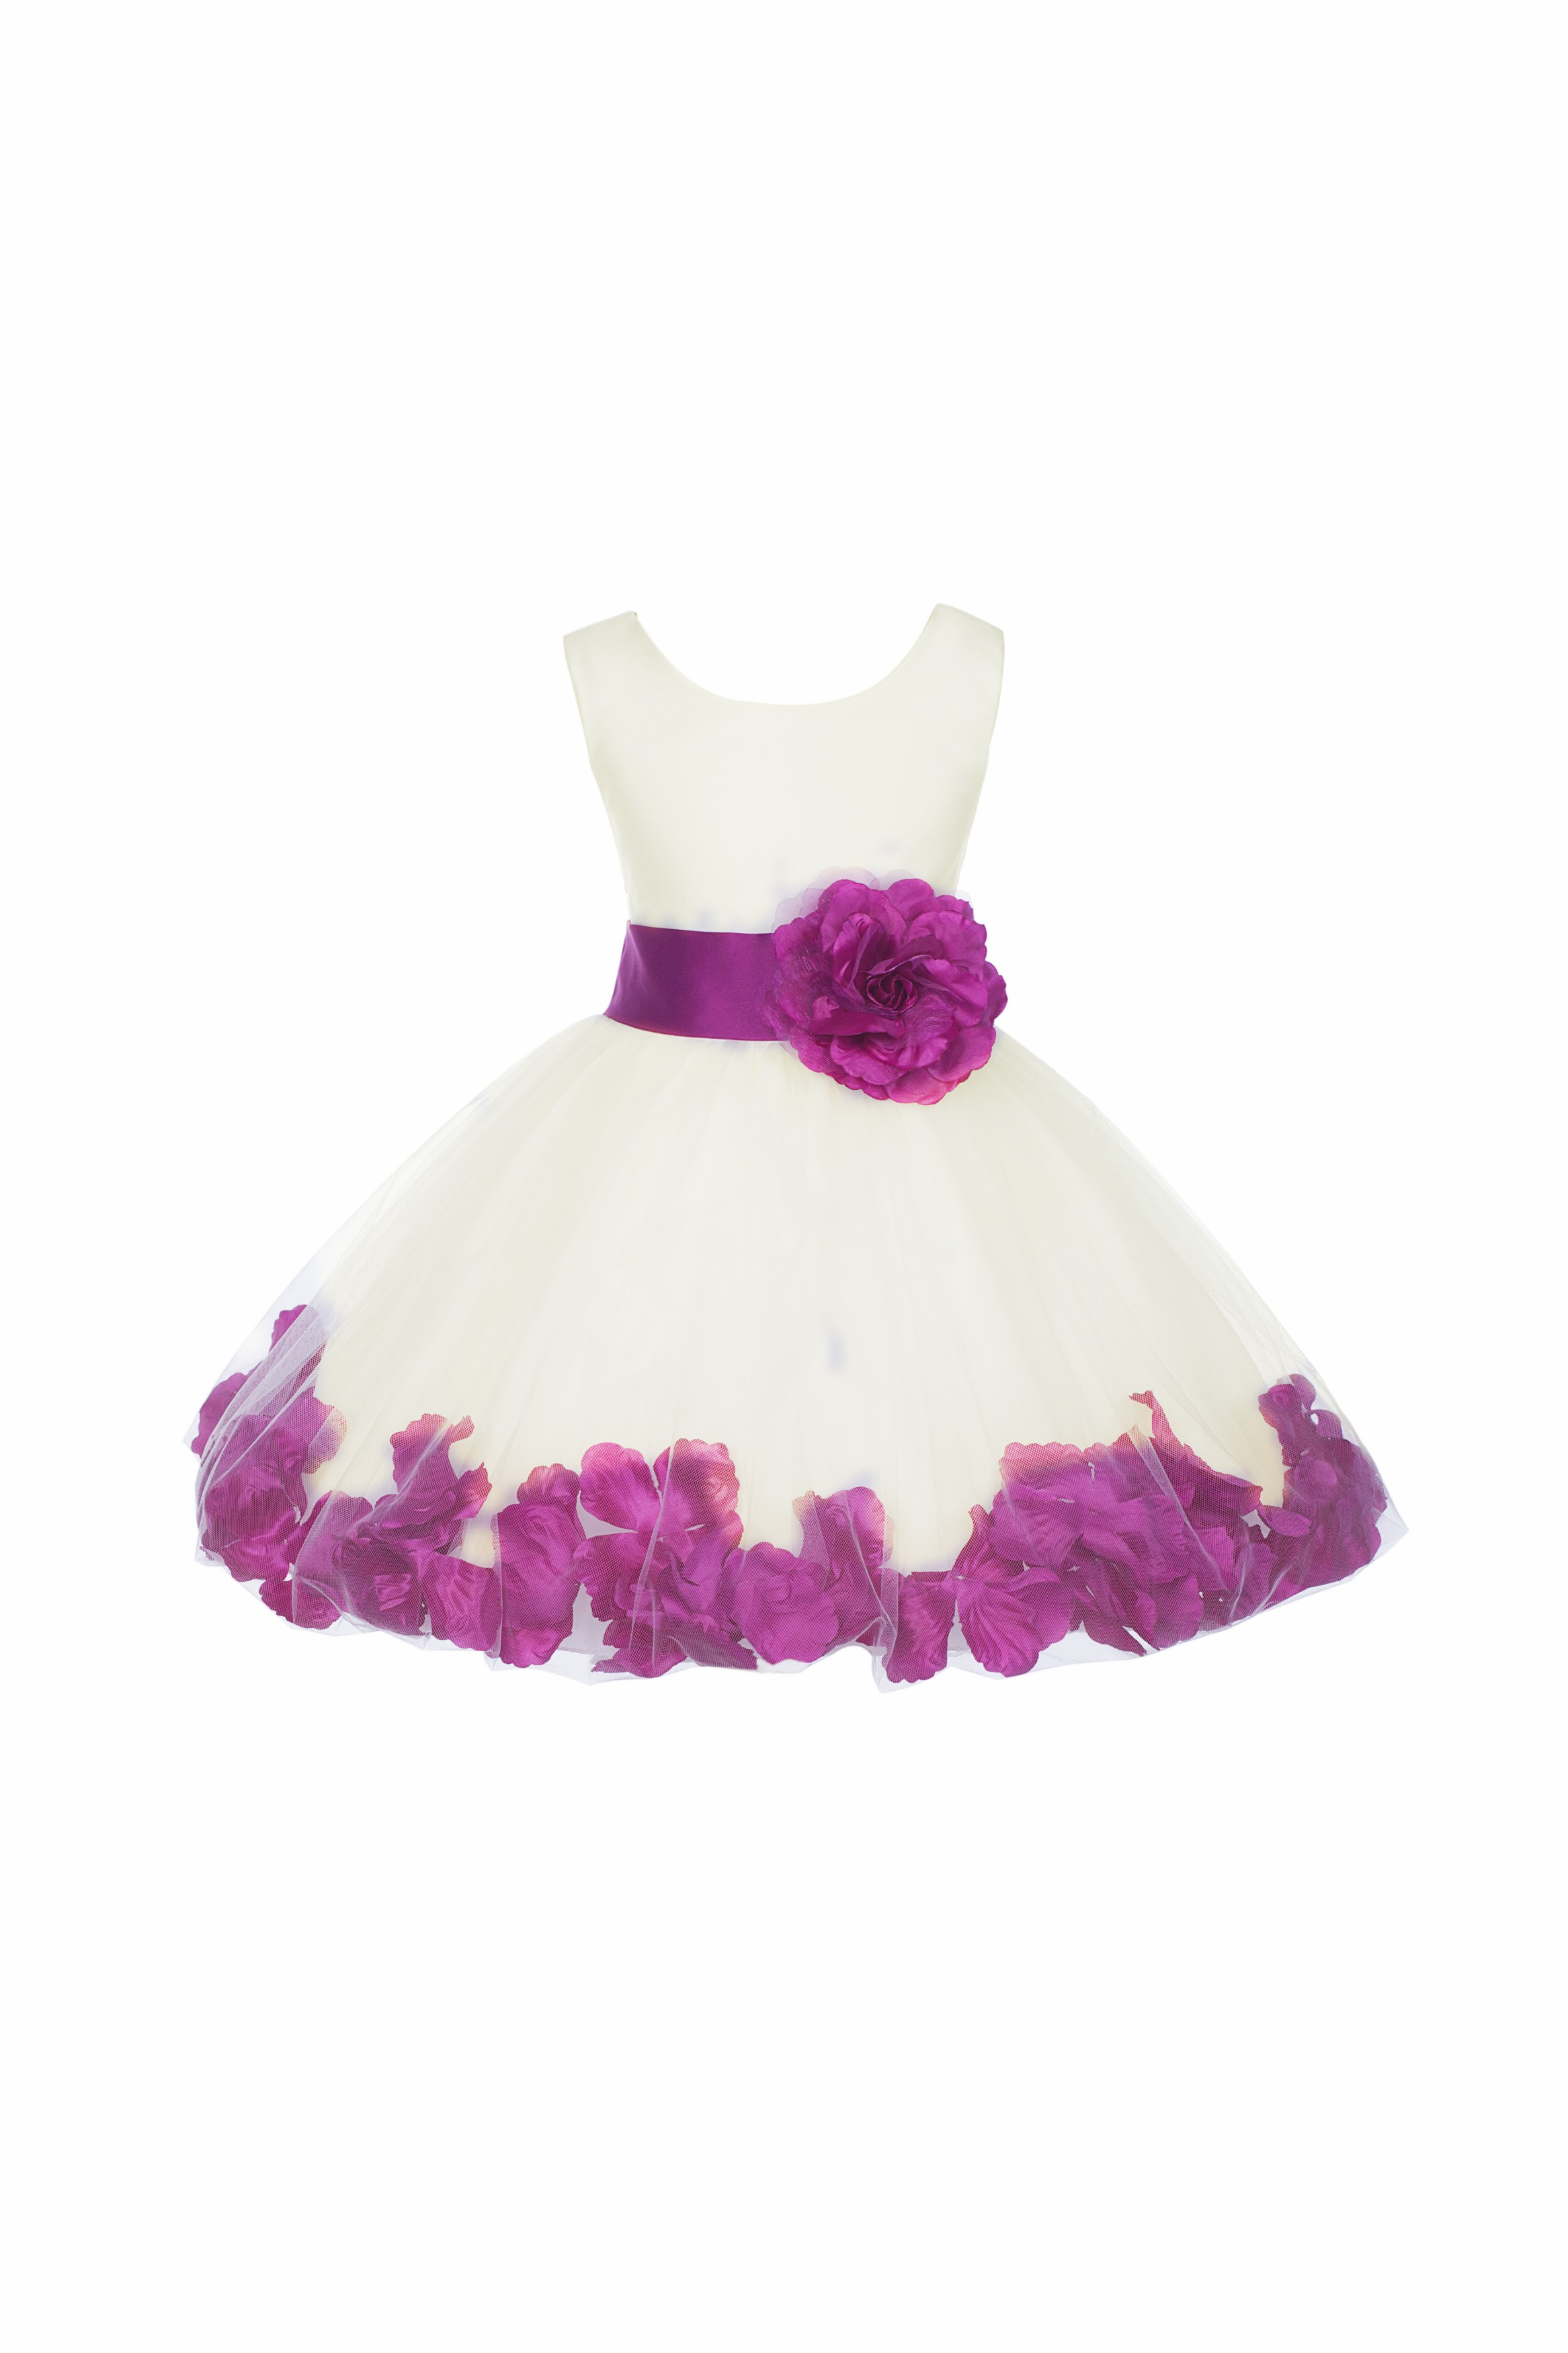 Ivory/Raspberry Rose Petals Tulle Flower Girl Dress Pageant 305T